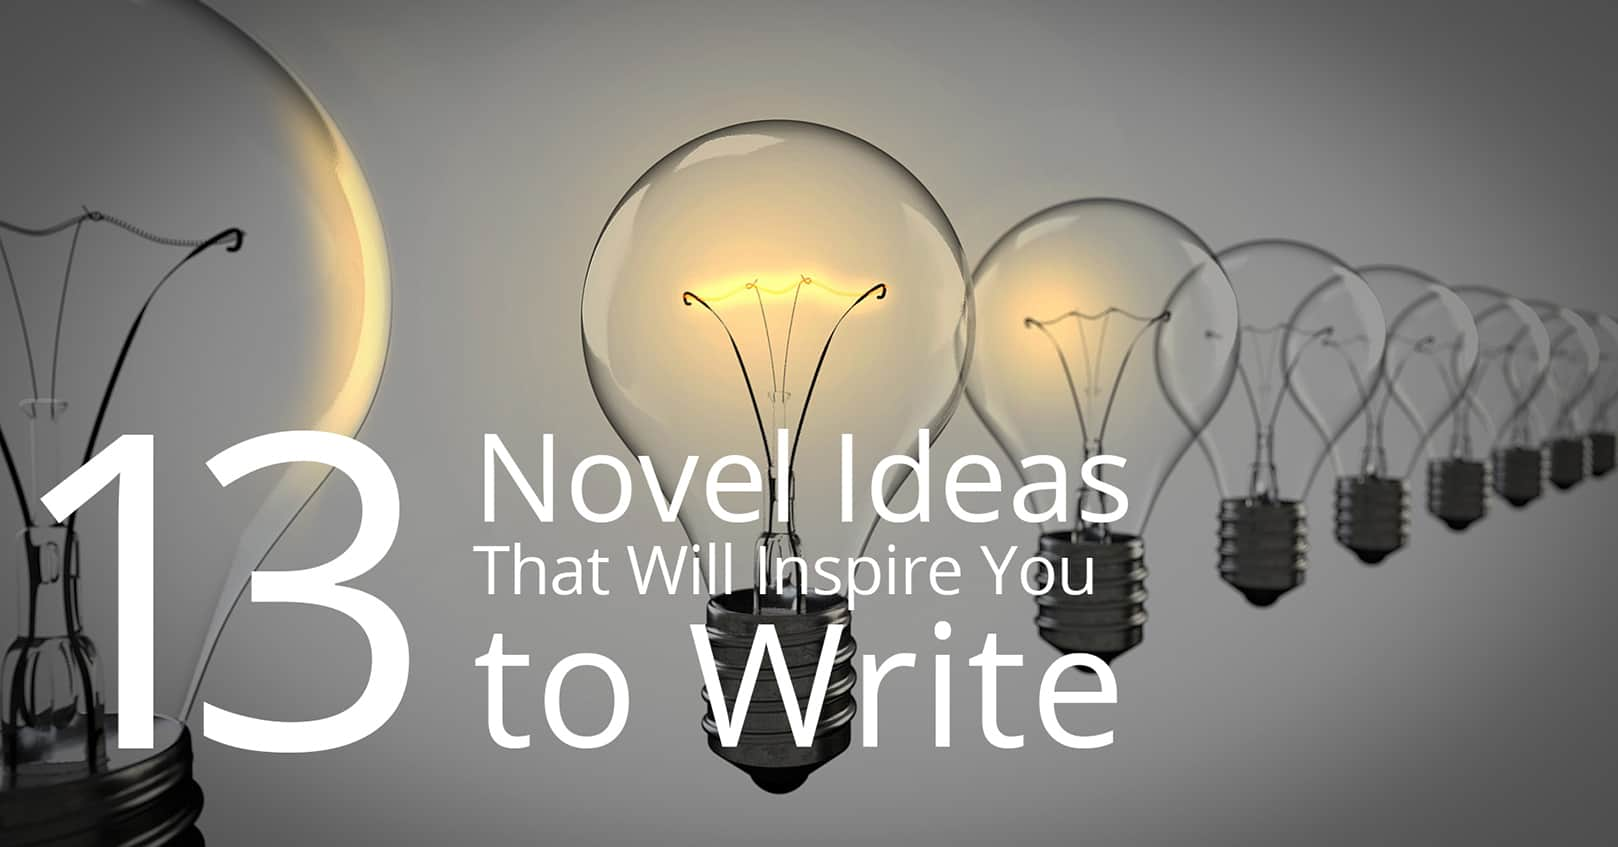 novel ideas that will inspire you to write